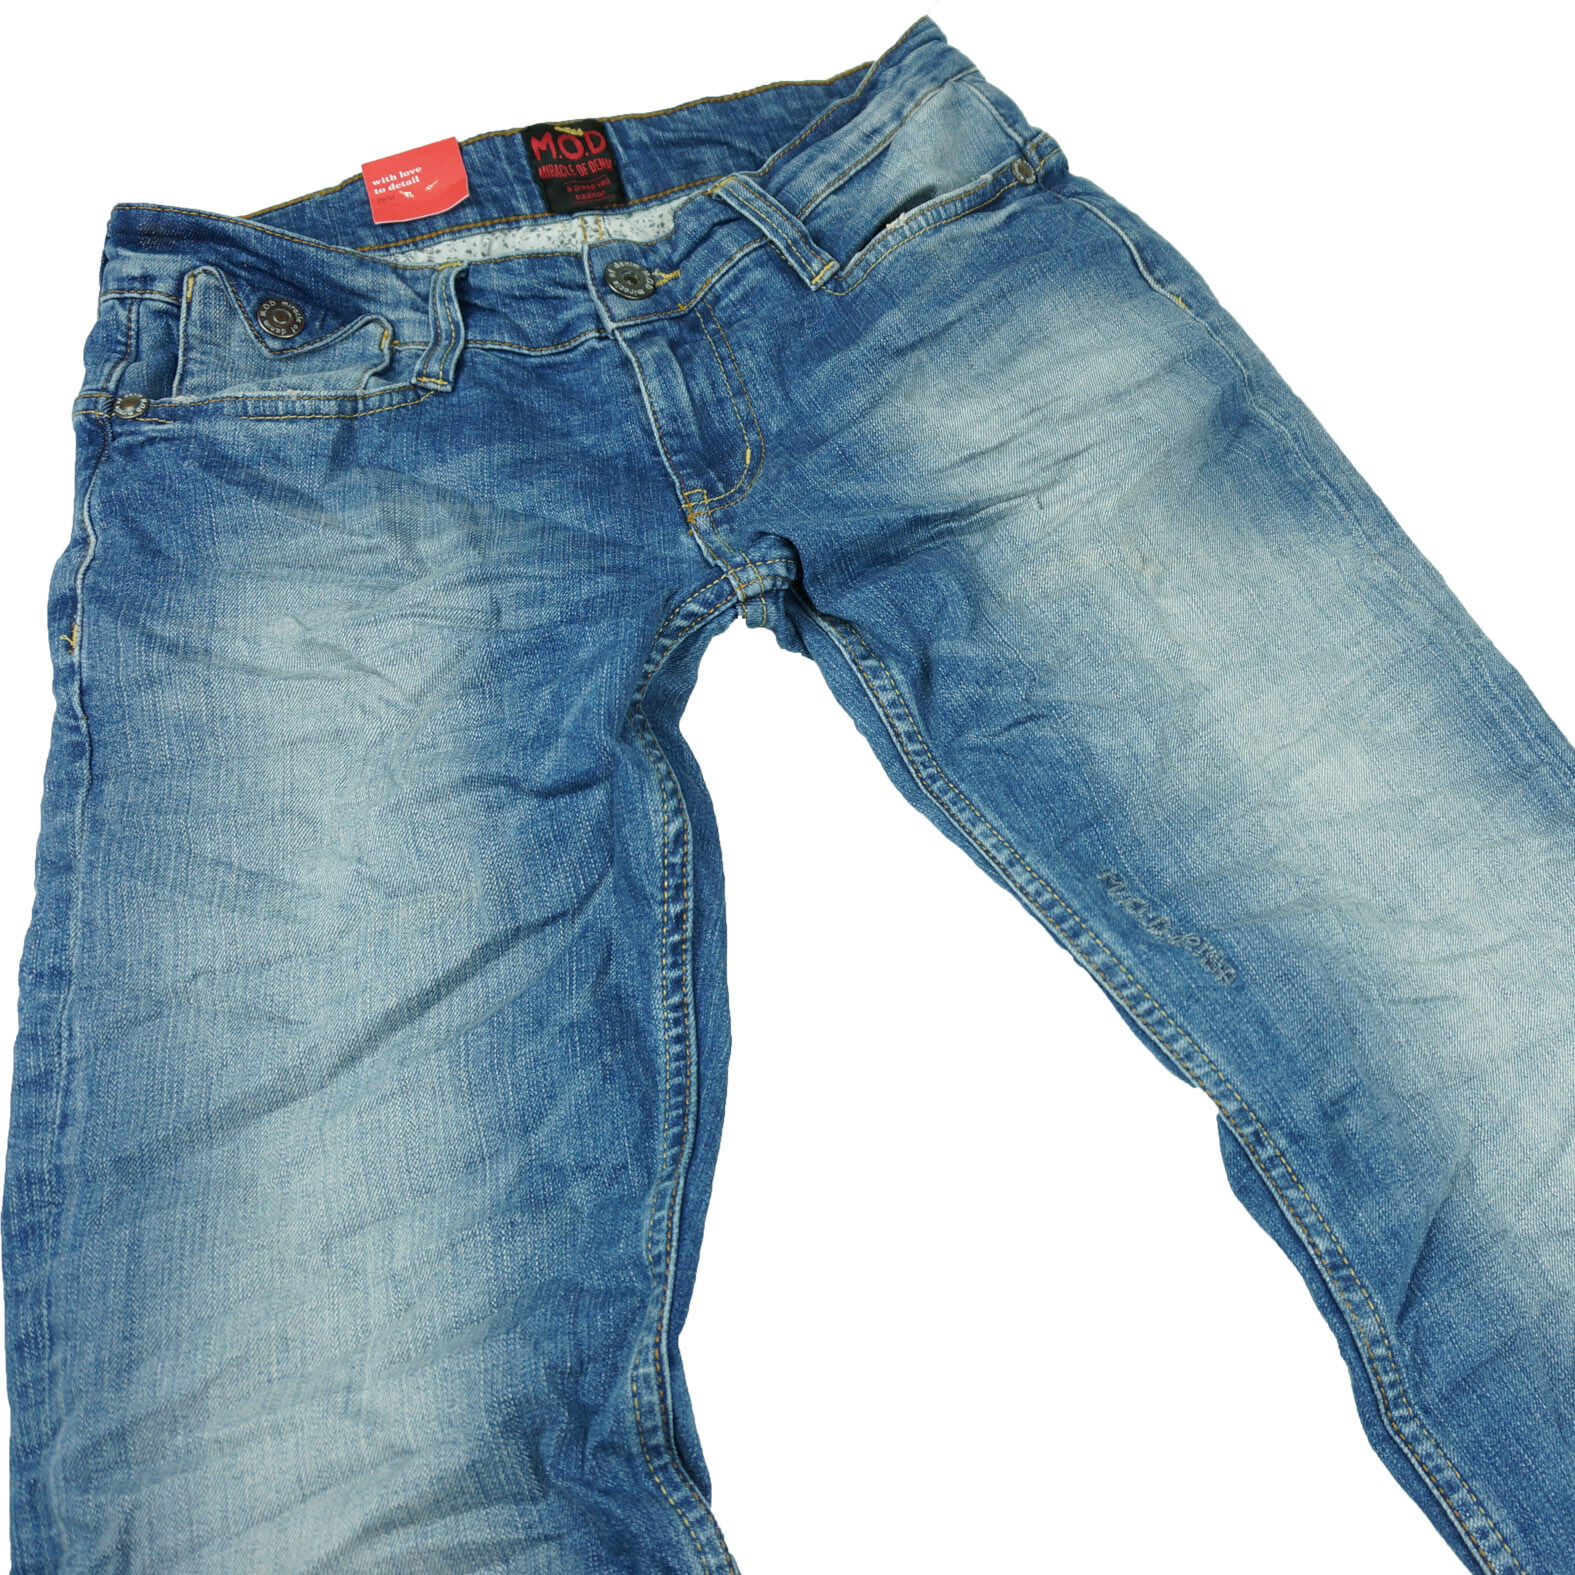 M.O.D MONOPOL Jeans Herren JOSHUA   POT Denim Blau MOD Danny Star Neu Hose POT     | Innovation